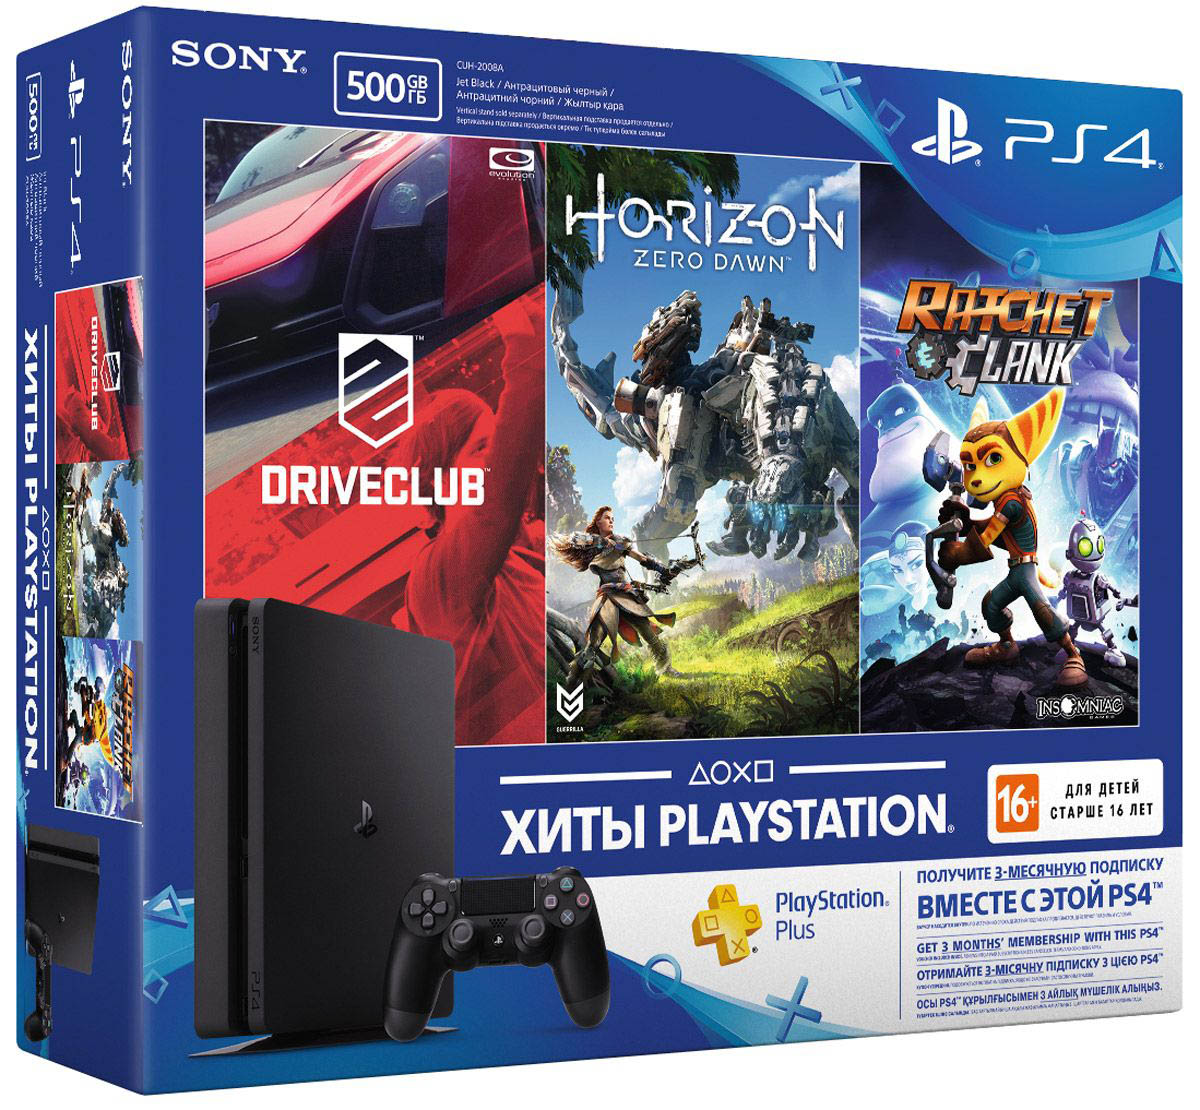 PlayStation 4 (Driveclub, Horizon Zero Dawn, Ratchet & Clank и 3-месячная подписка PlayStation Plus) издание в России